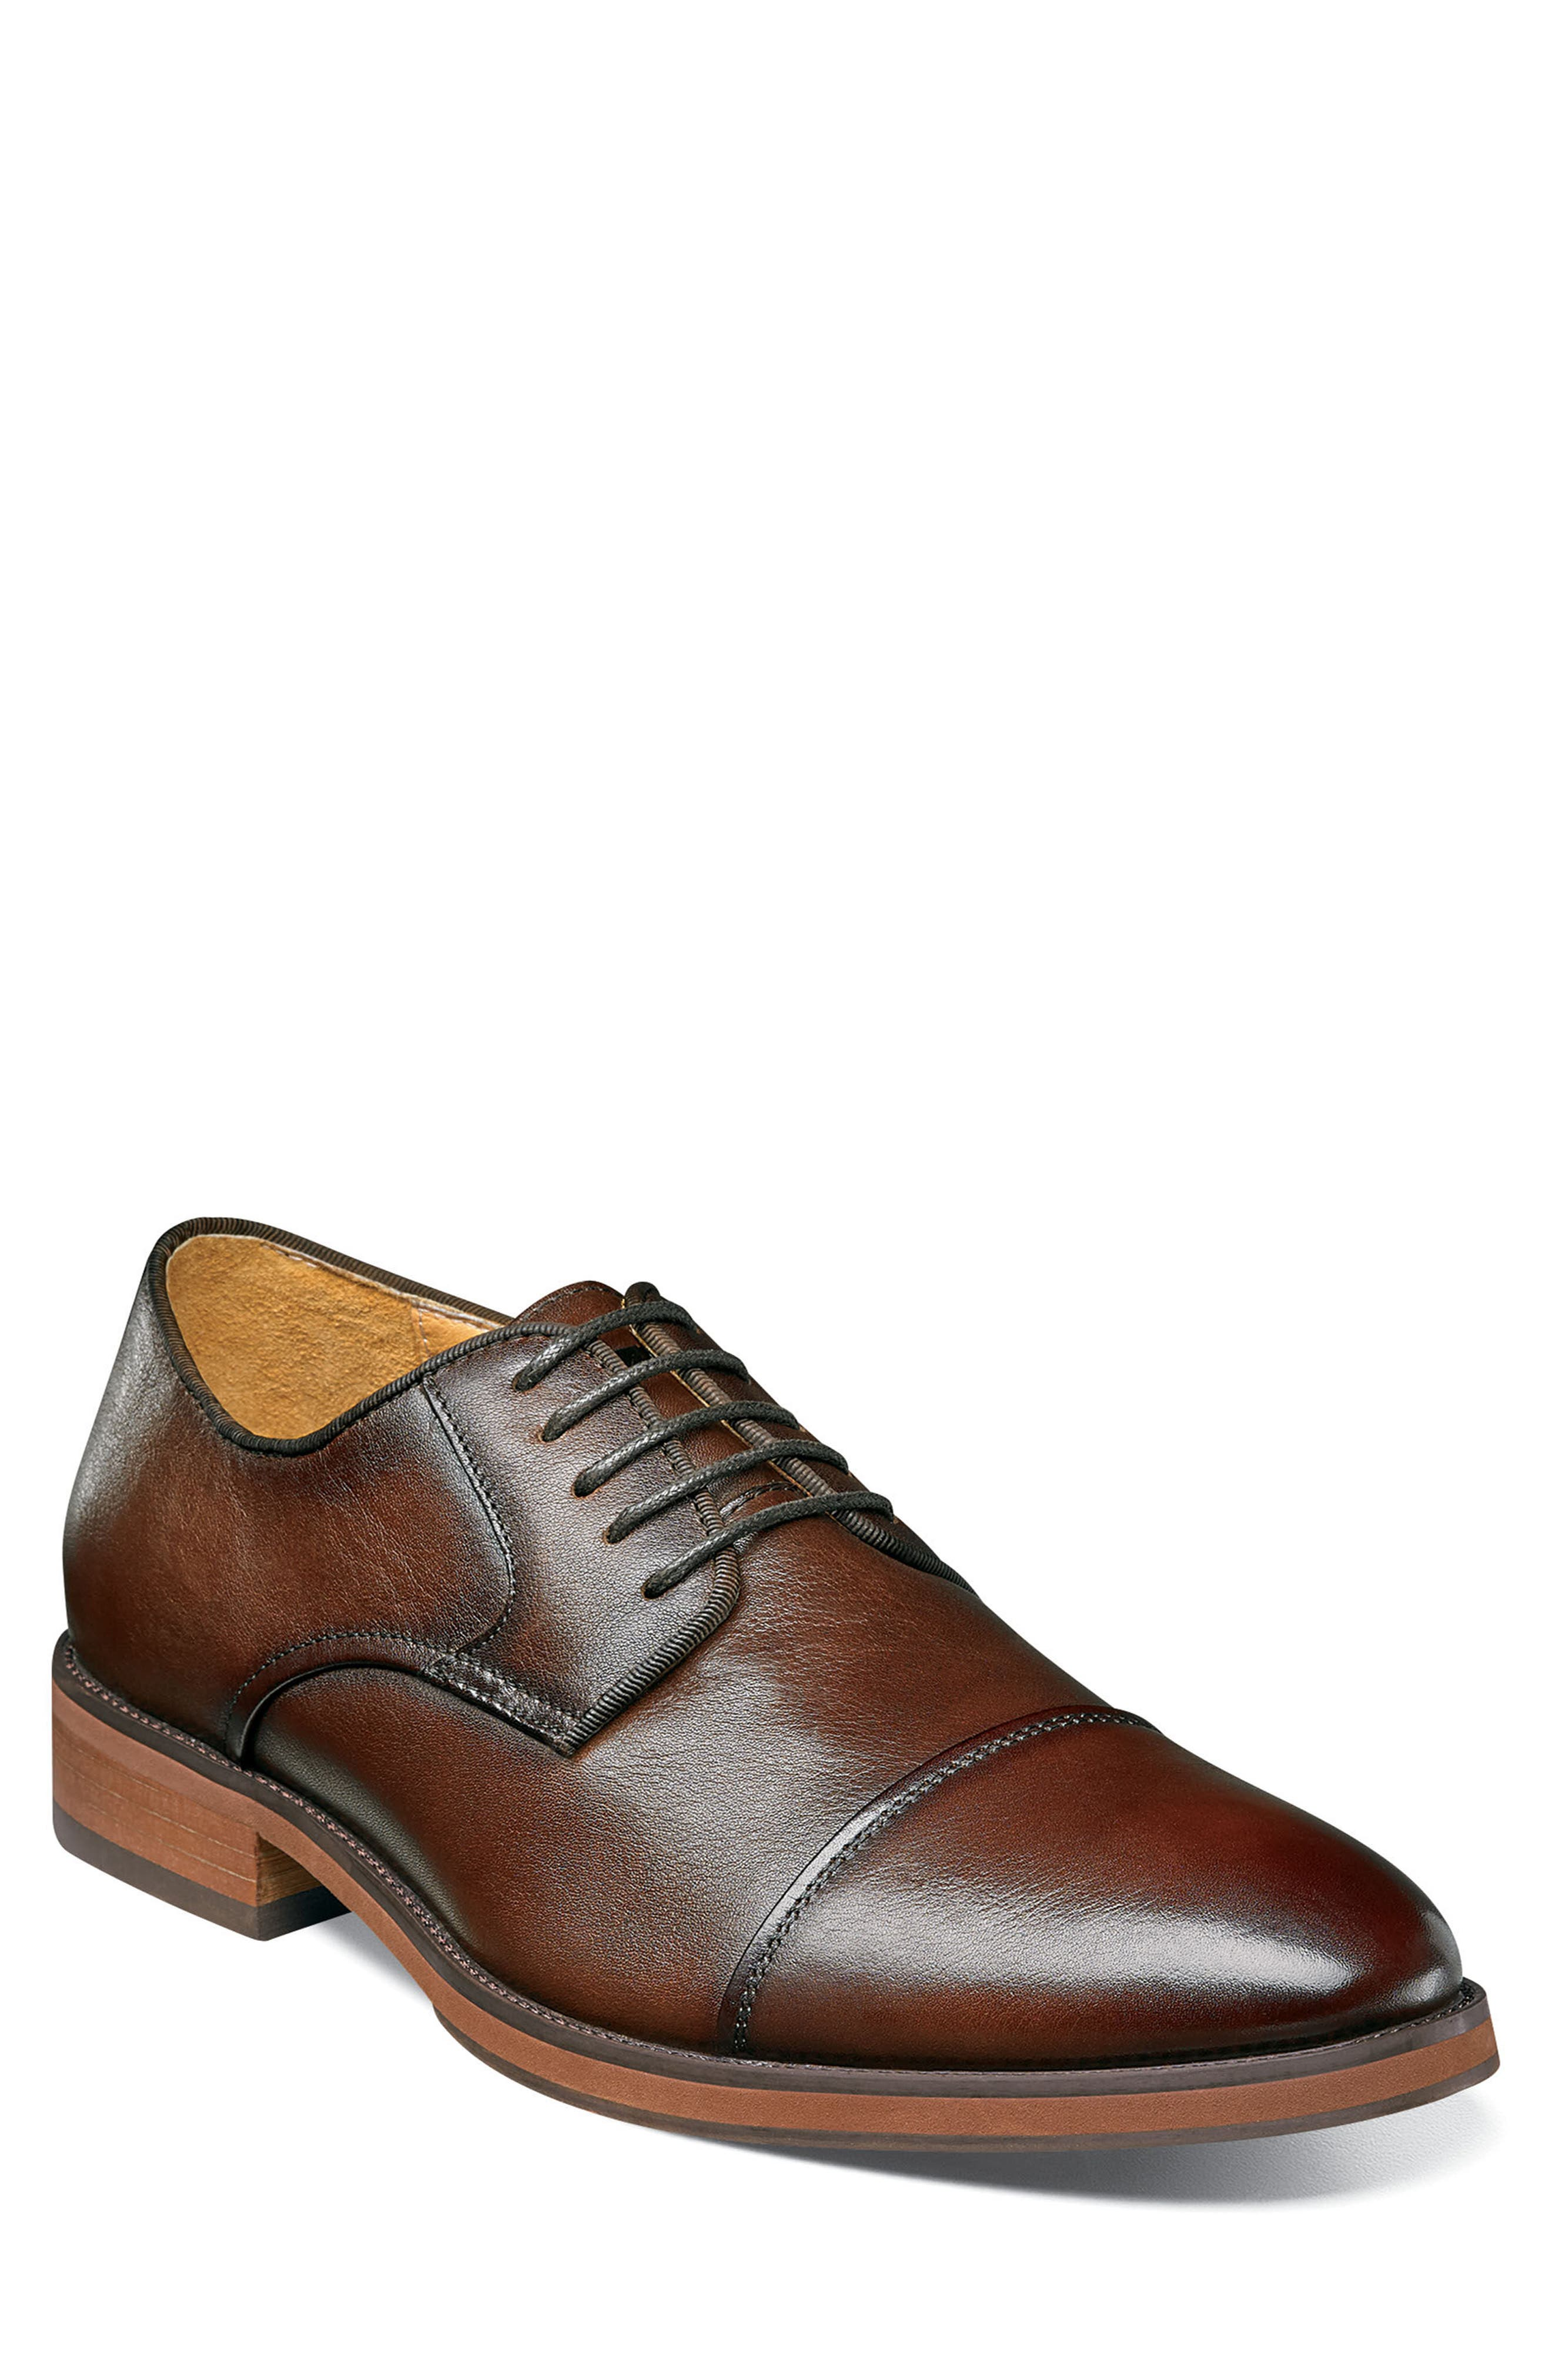 Blaze Cap Toe Derby,                             Main thumbnail 1, color,                             Cognac Leather